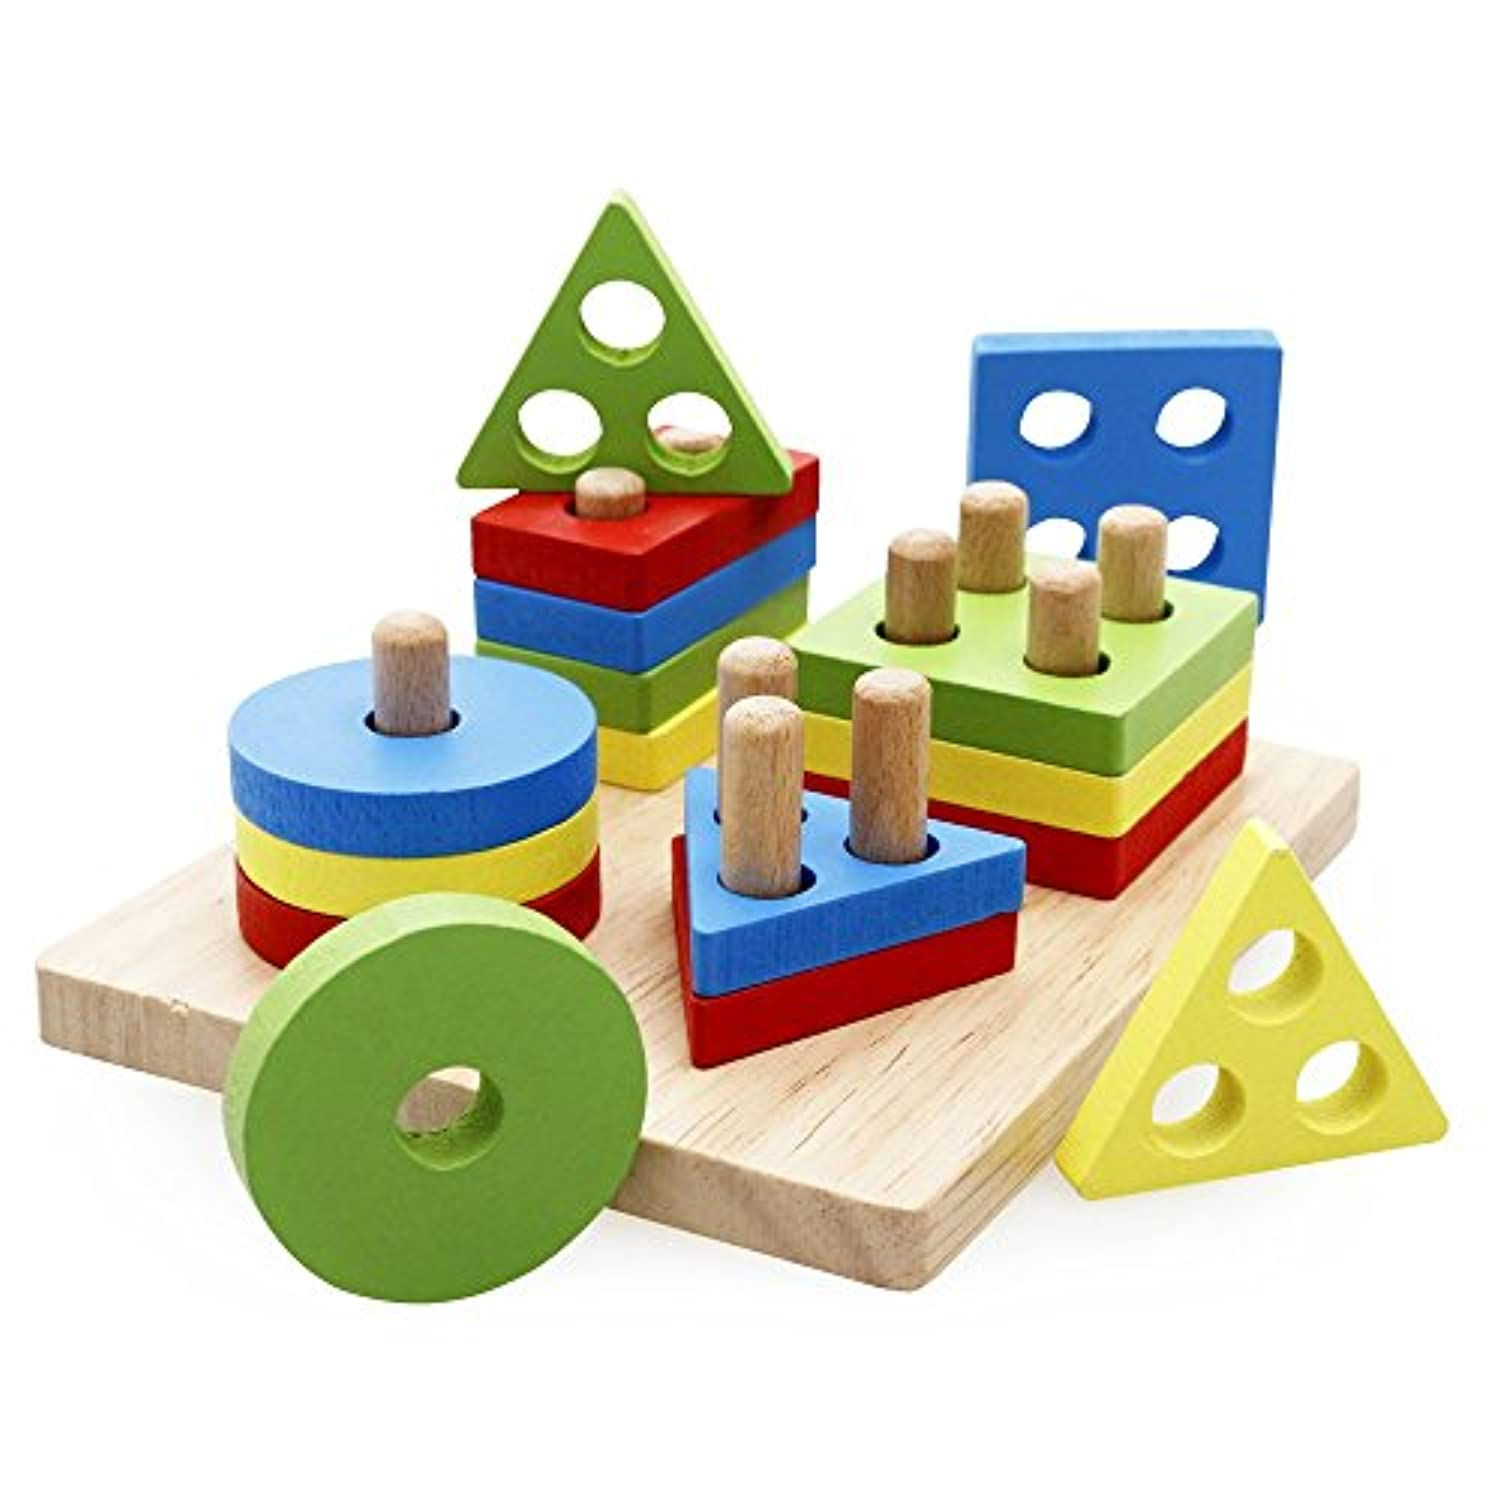 Rolimate Wooden Educational Preschool Shape Color Recognition Geometric Board Block Stack Sort Chunky Puzzle Toys, Birthday gifts toy for age 3 4 5 Years Old and Up Kid Children Baby Toddler Boy Girl by Rolimate